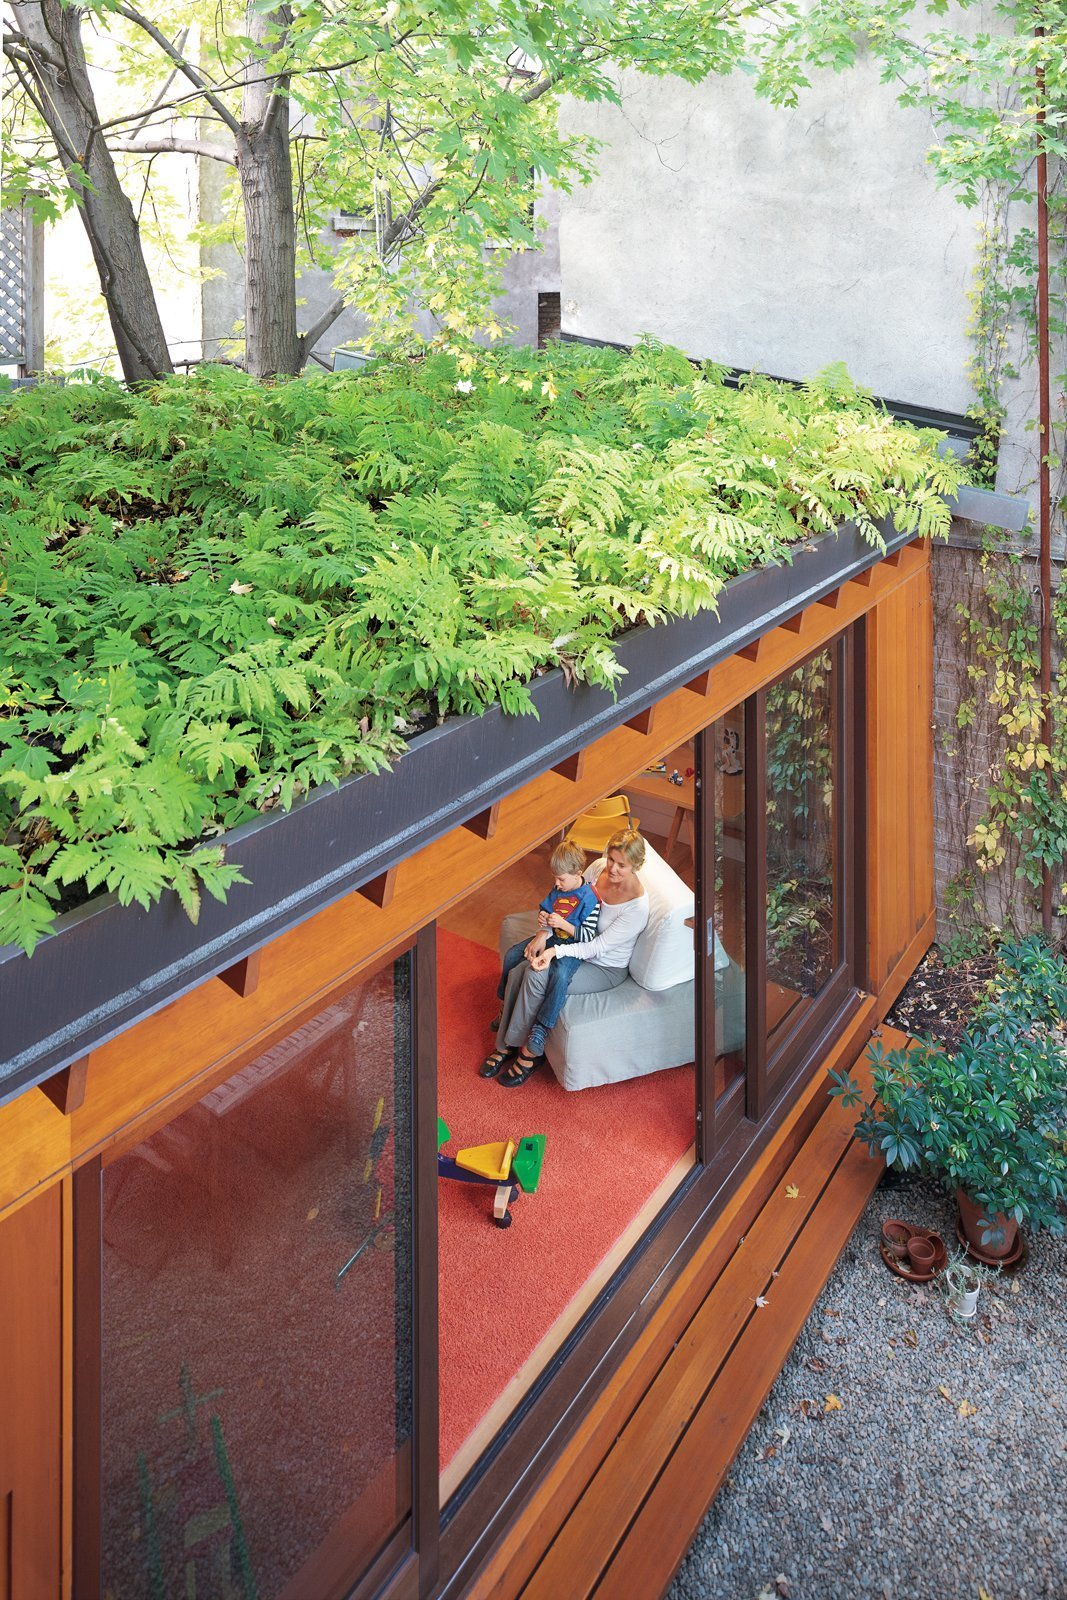 4 Easy Steps to Creating Your Own DIY Green Roof